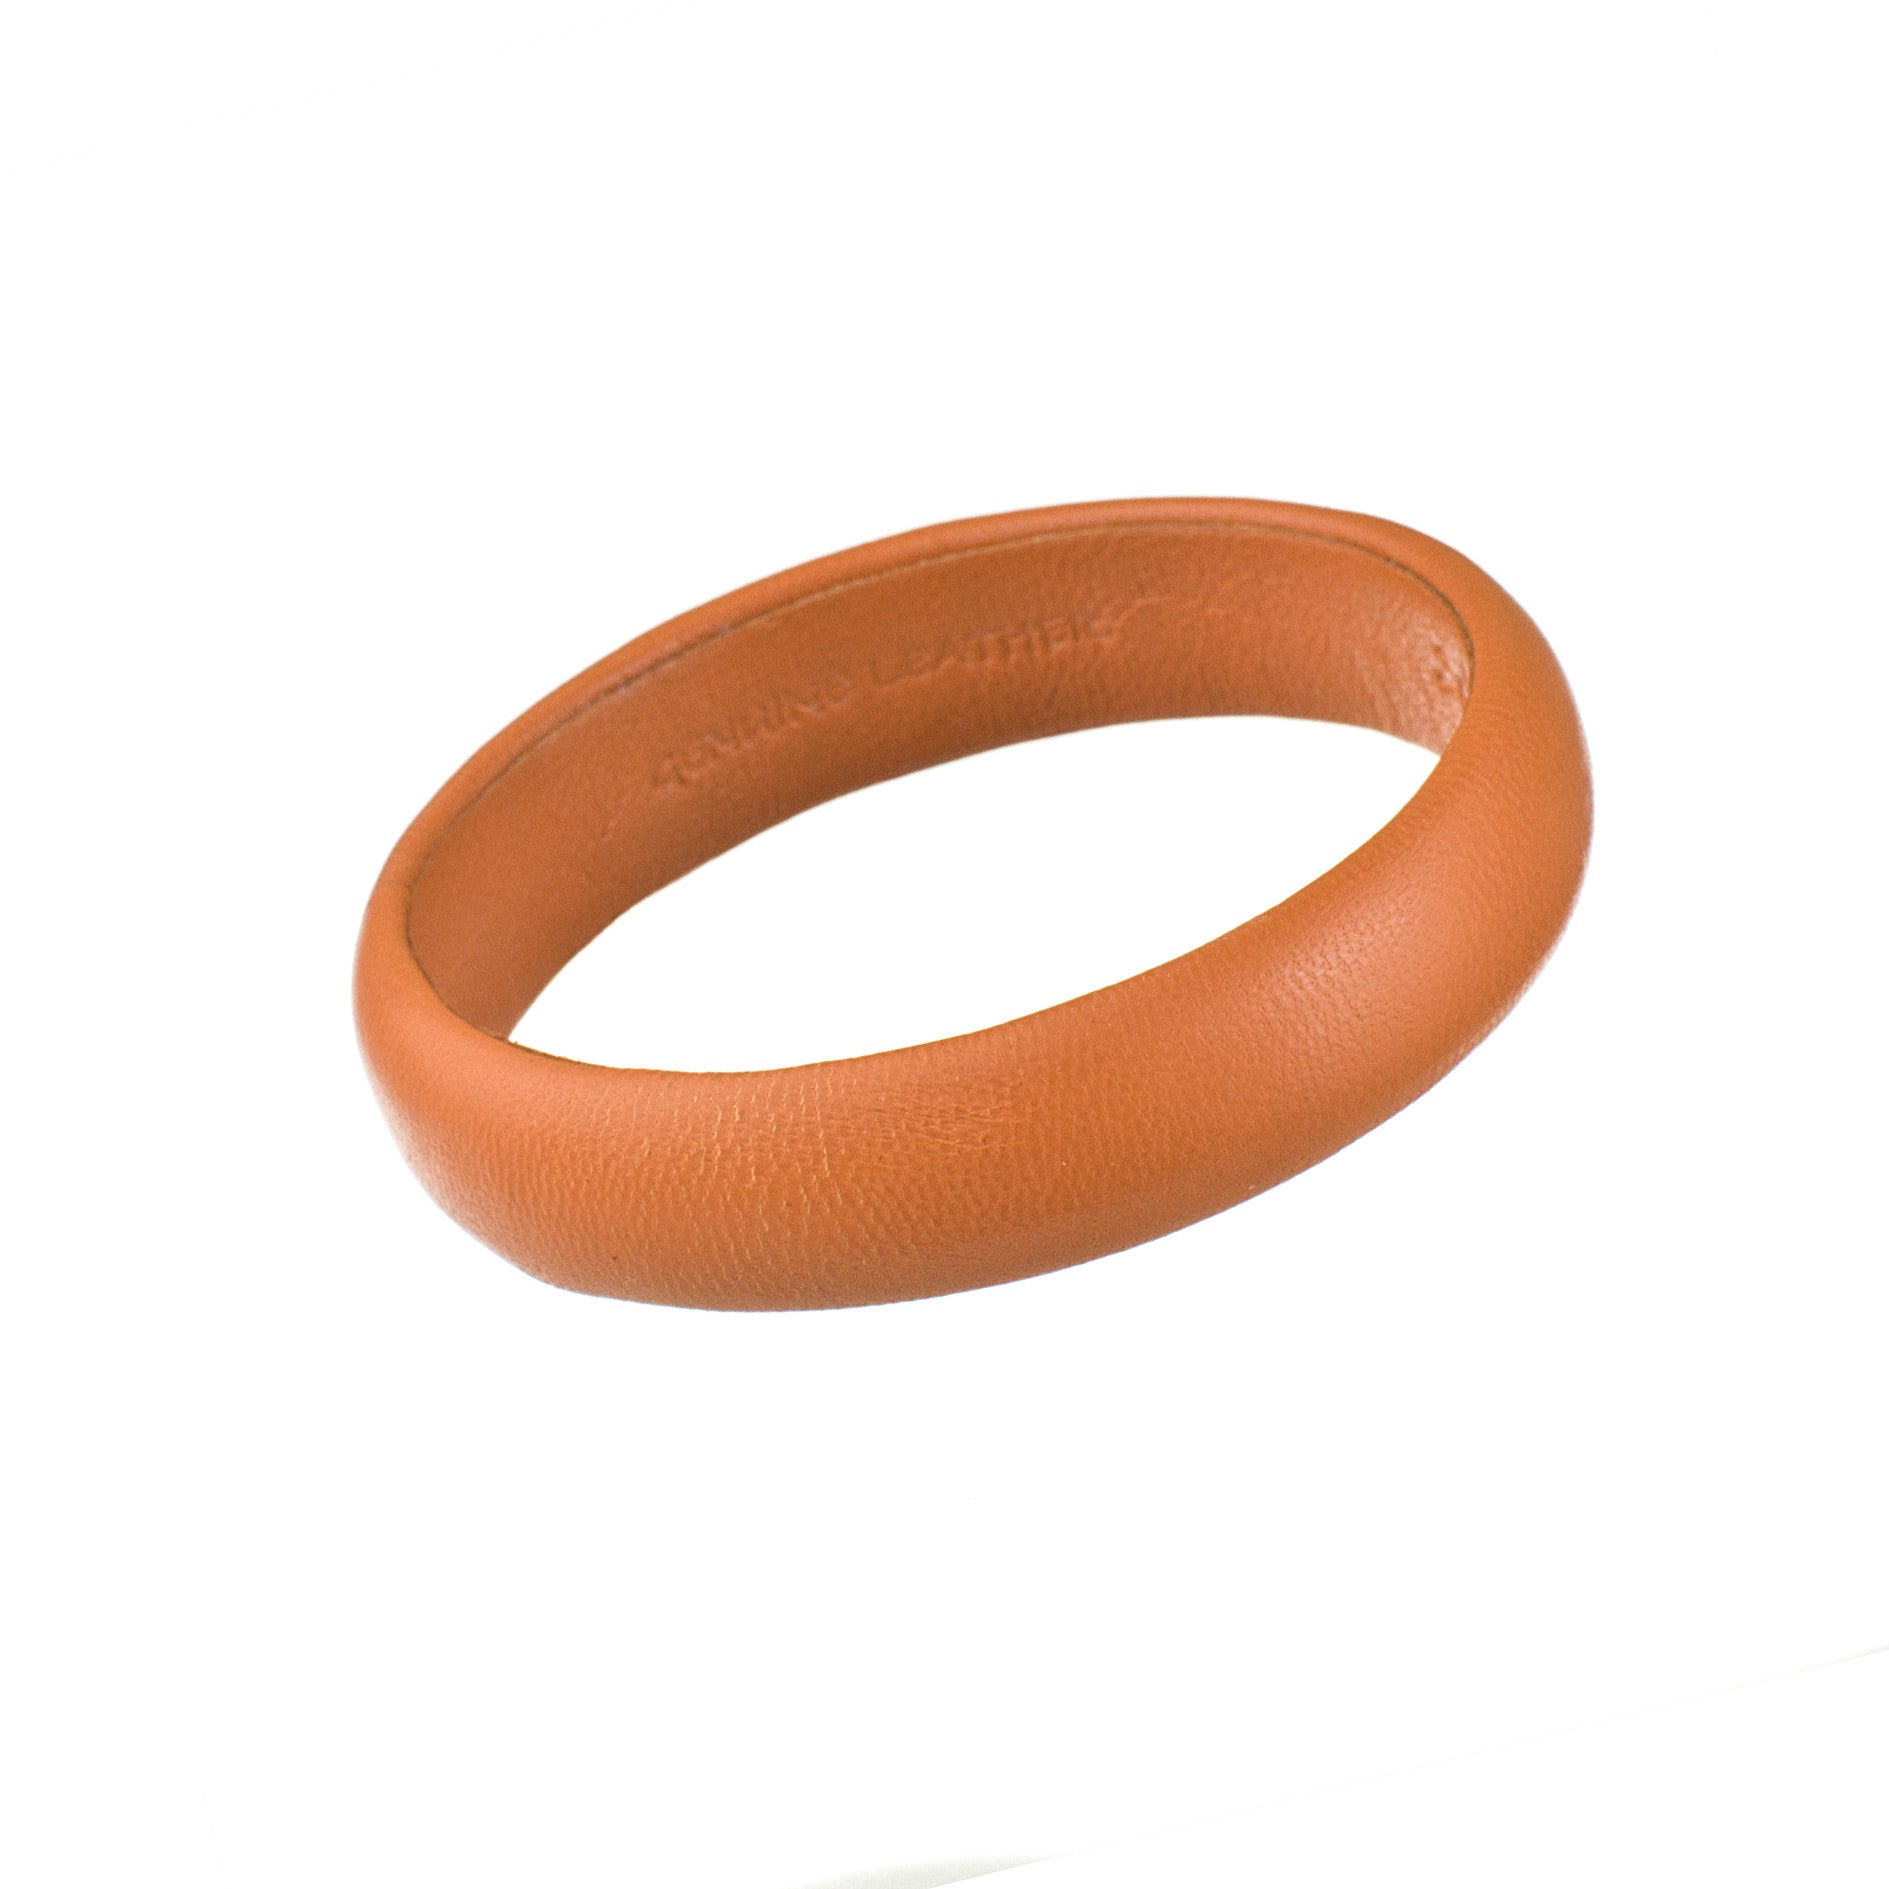 Vintage Orange Petite Leather Bangle Bracelet sd1Twenty5 single